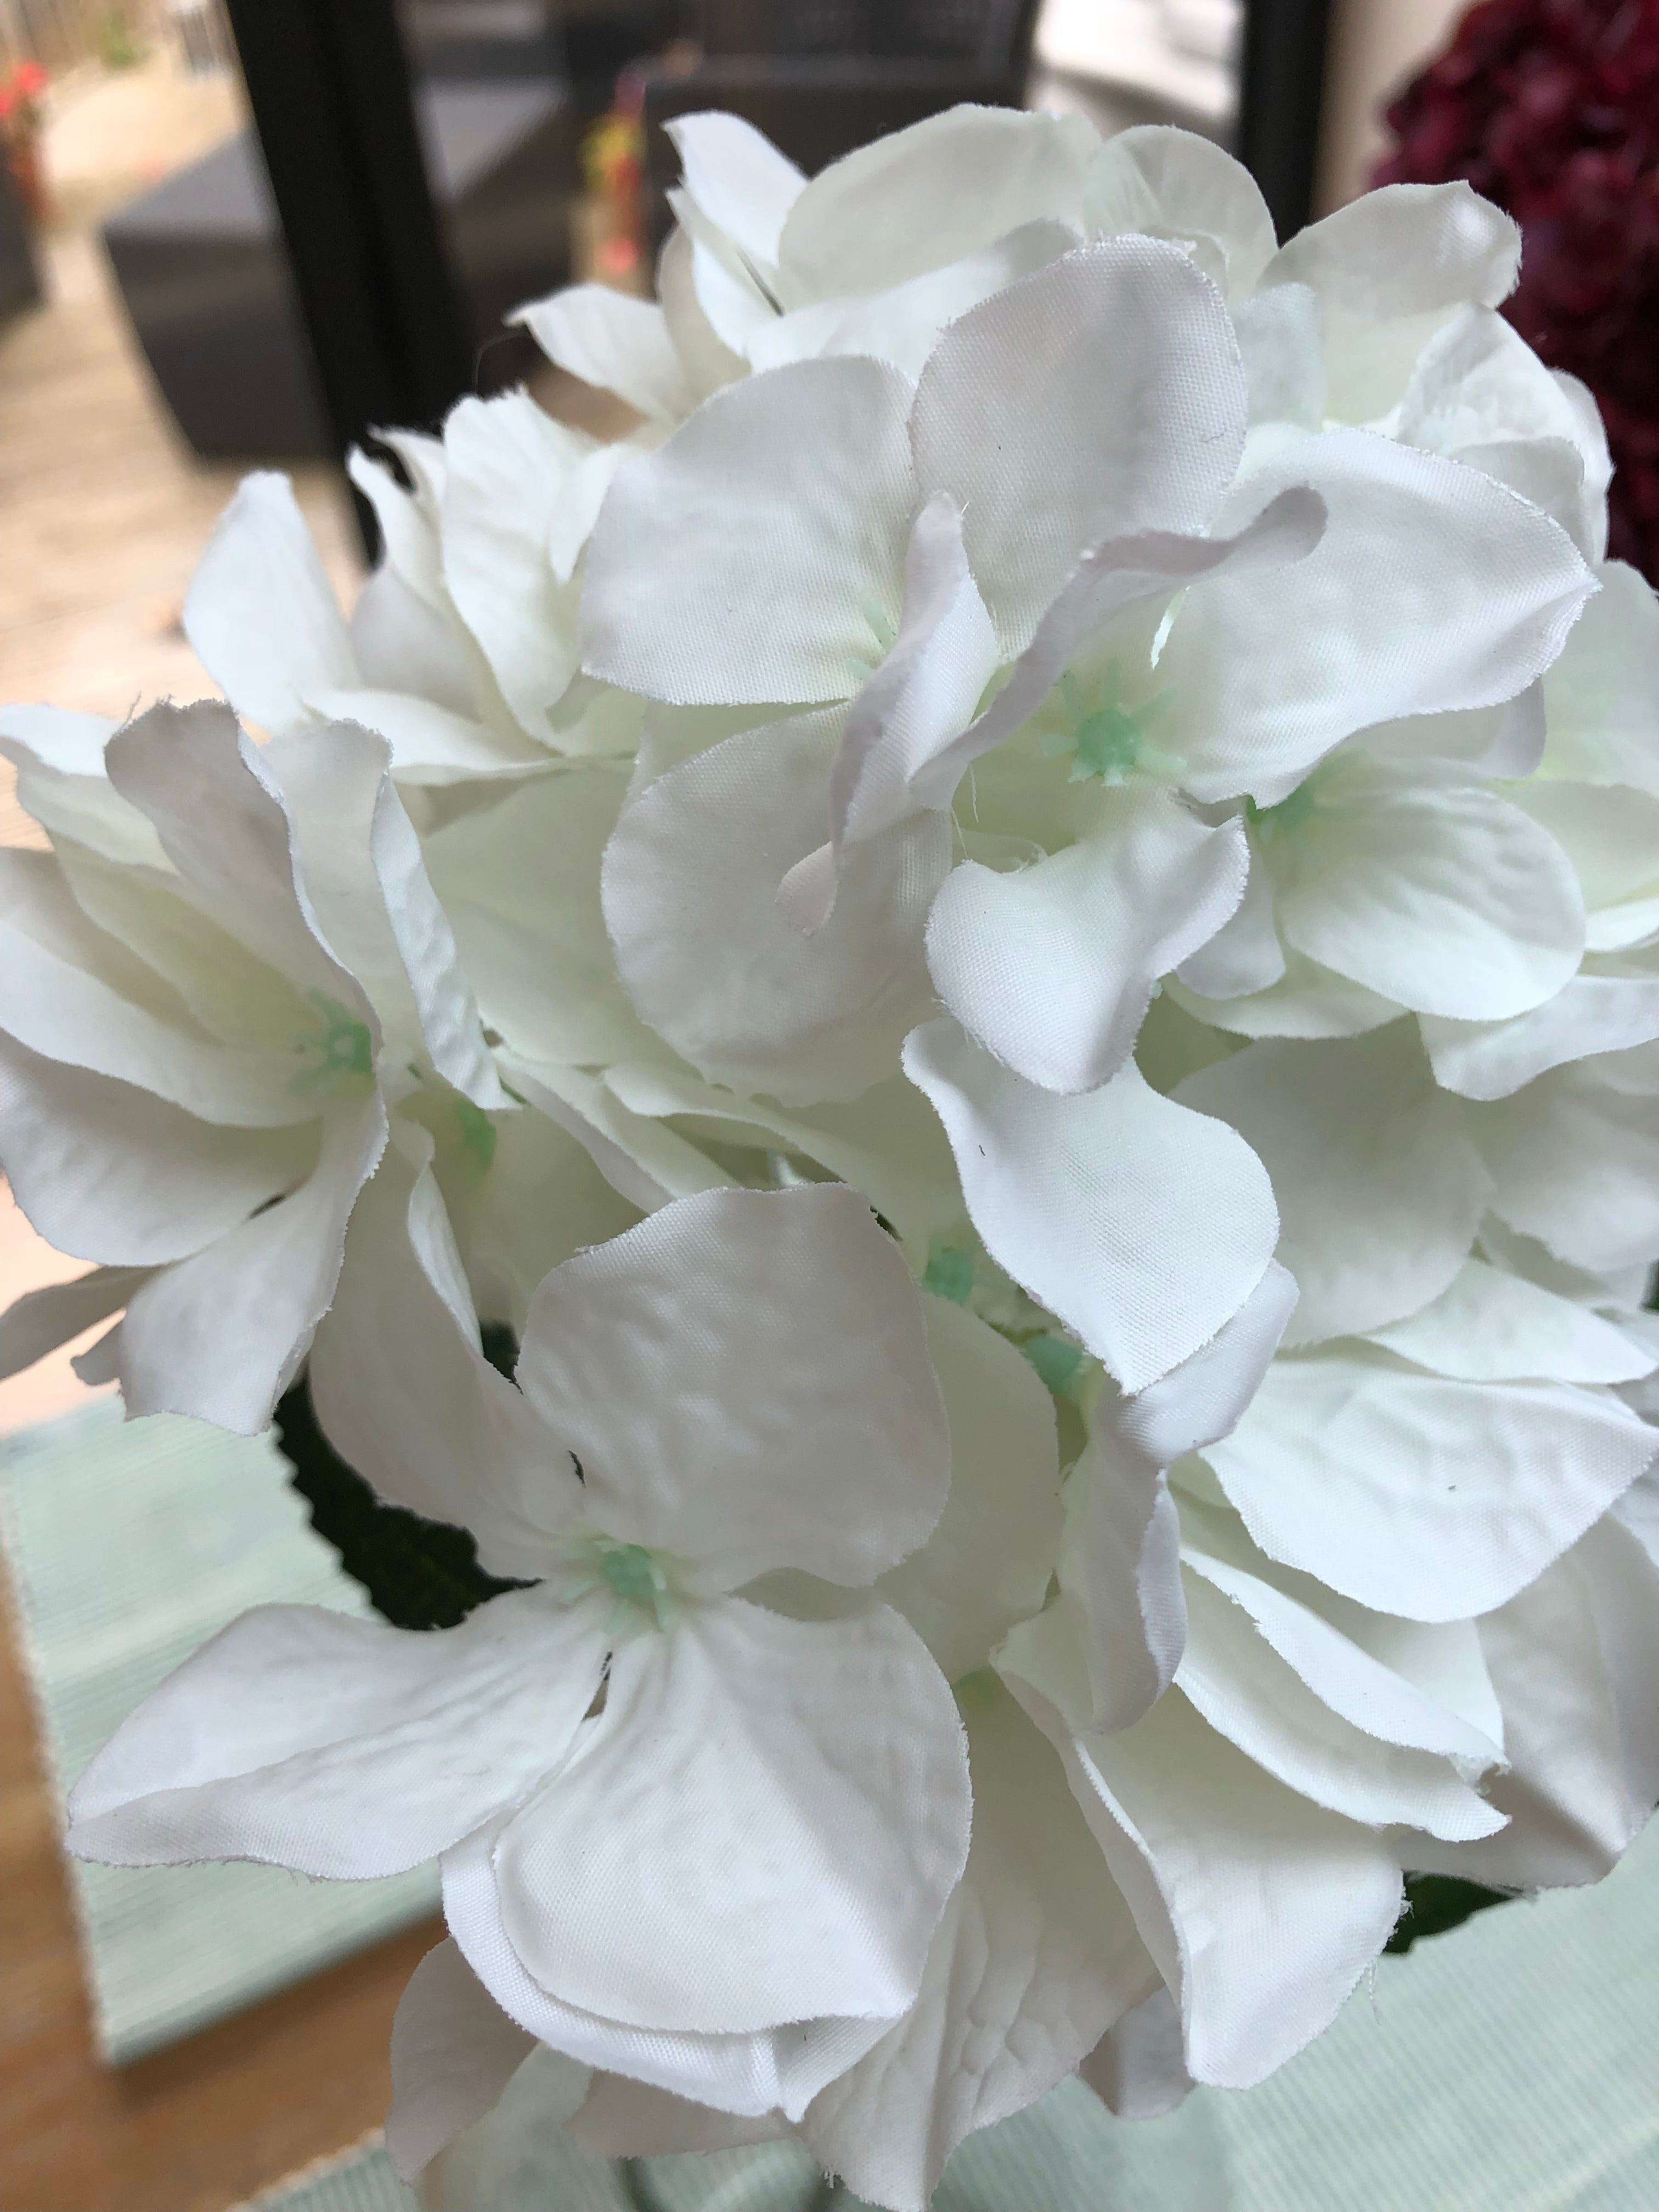 Mini White Hydrangeas - Further reduction